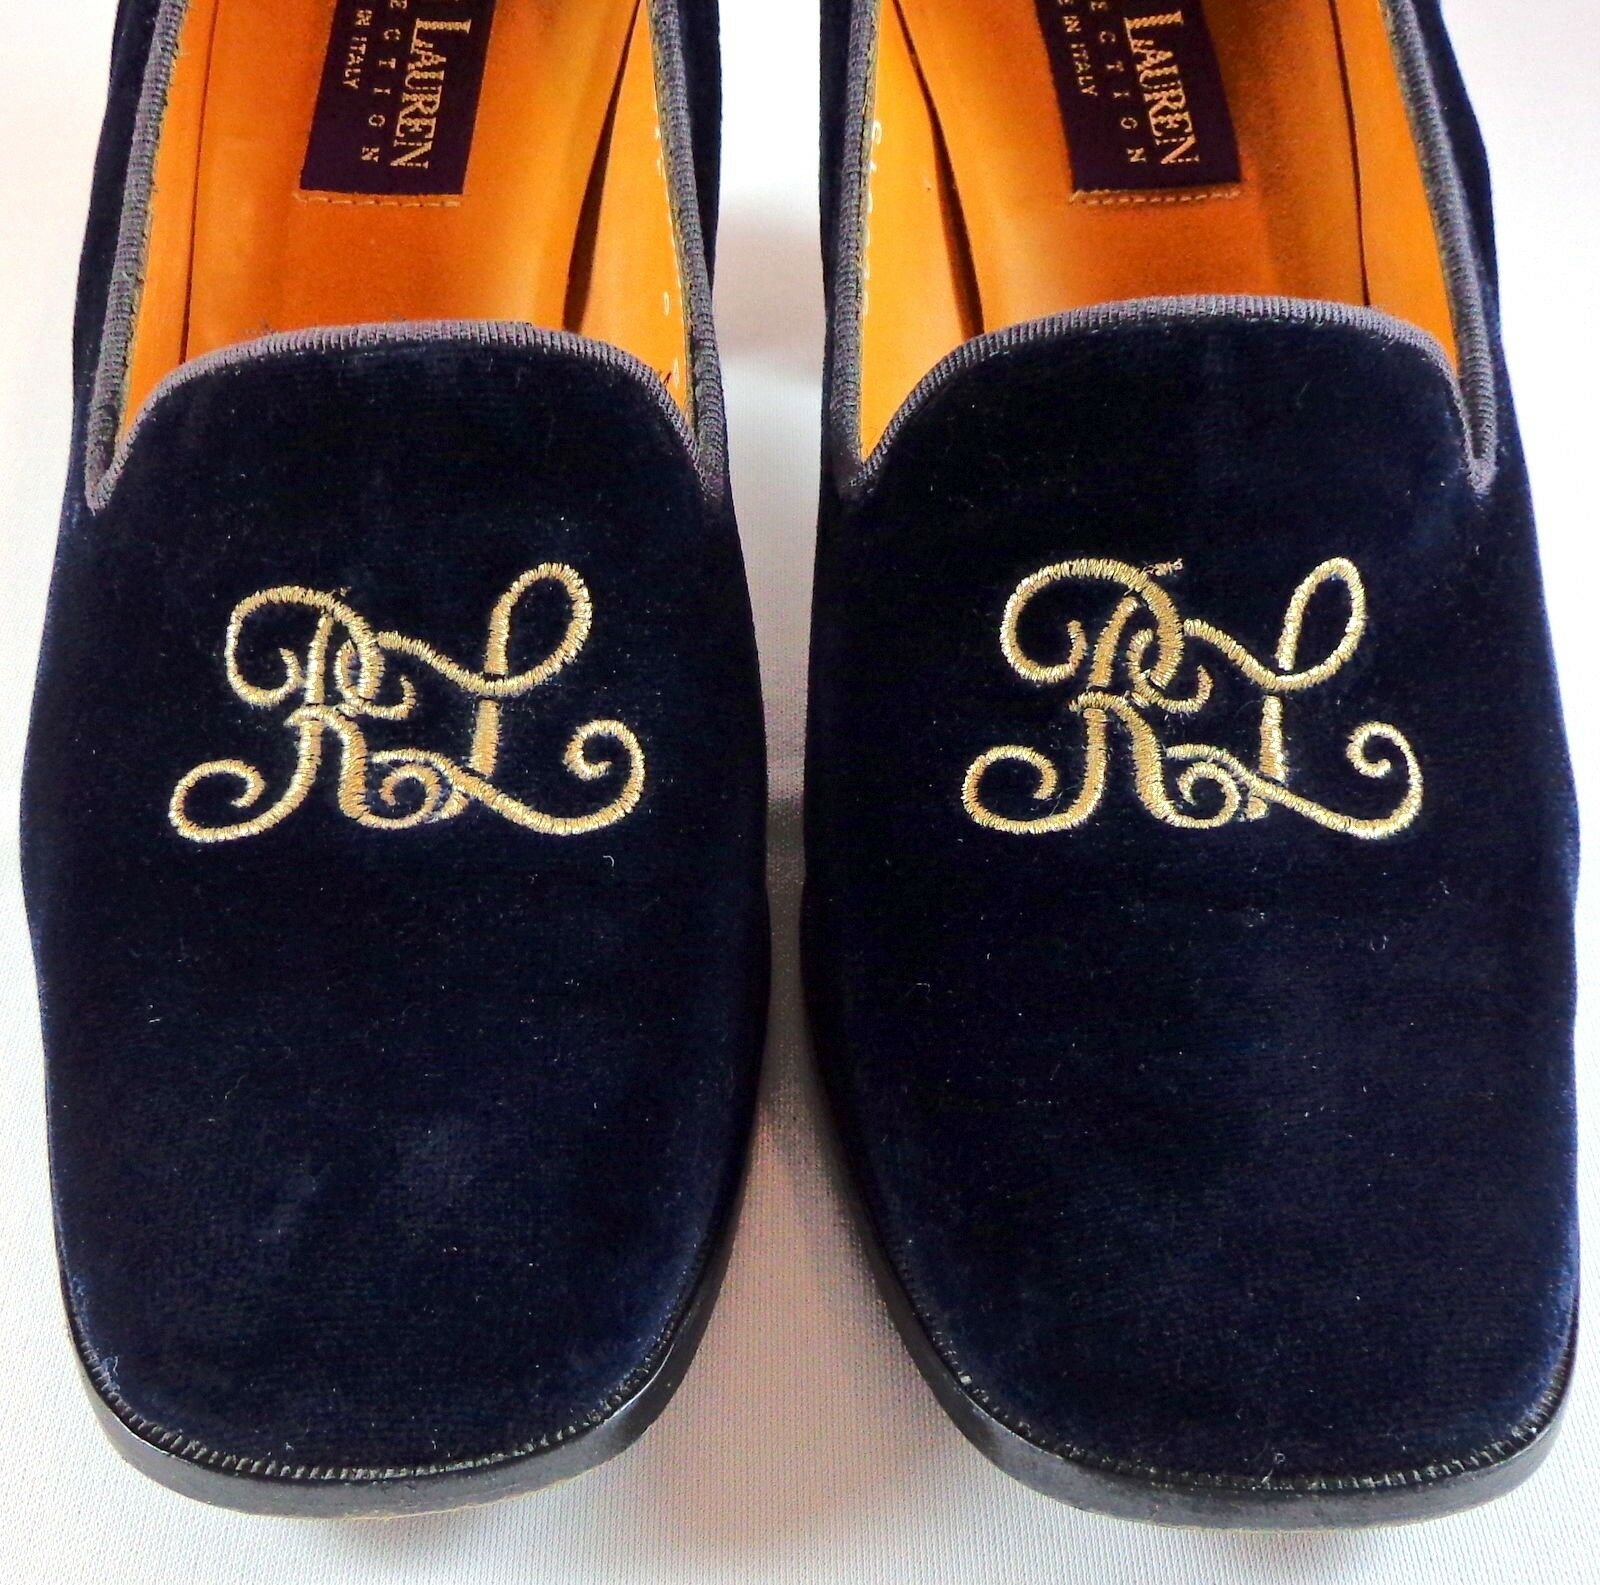 Ralph Lauren Collection Womens Blue Velvet Pumps Size 9 B RL Monogram